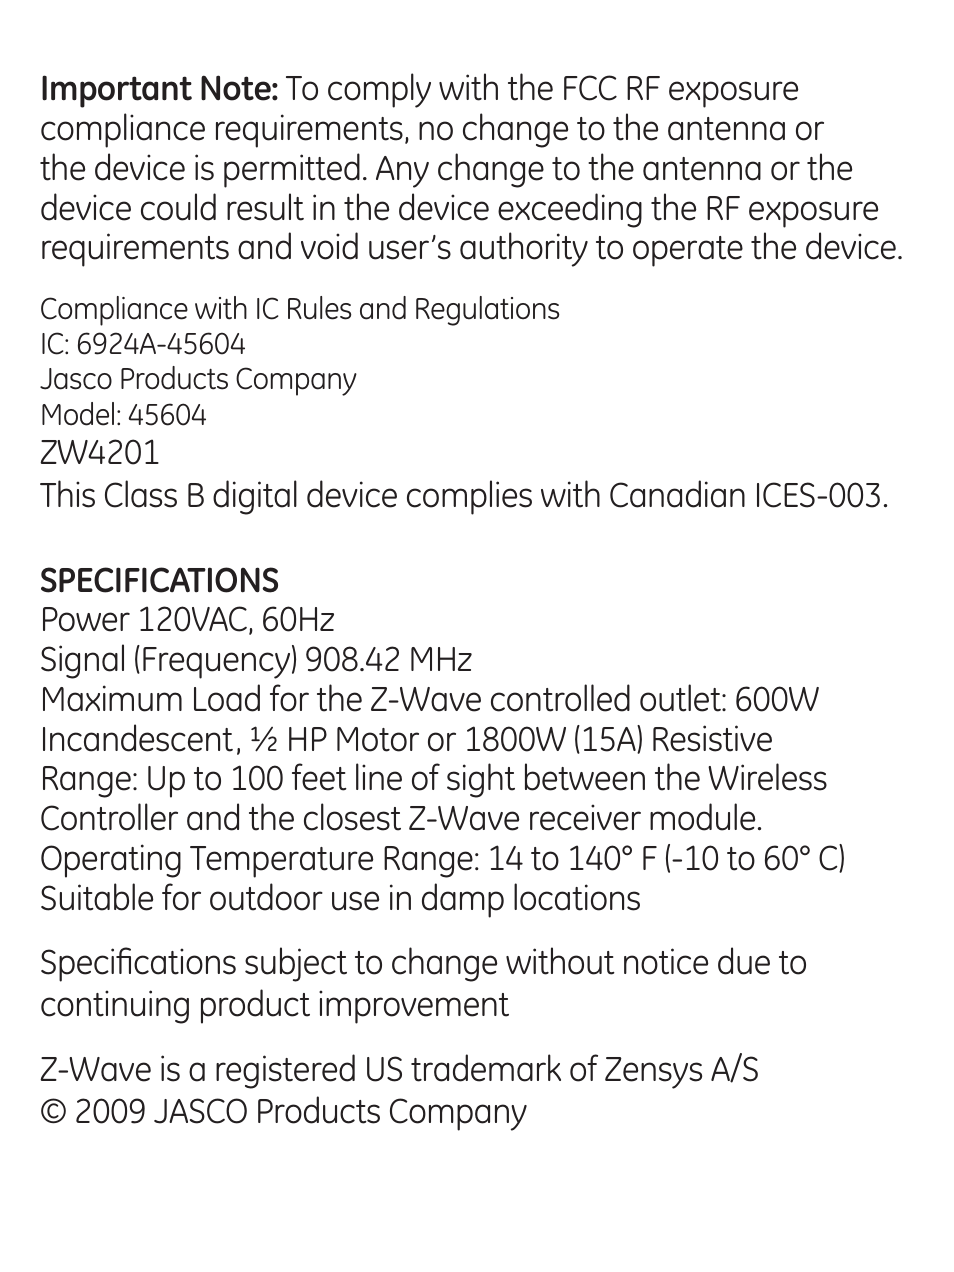 GE 45604 GE Z Wave Outdoor Module User Manual Page 13 14